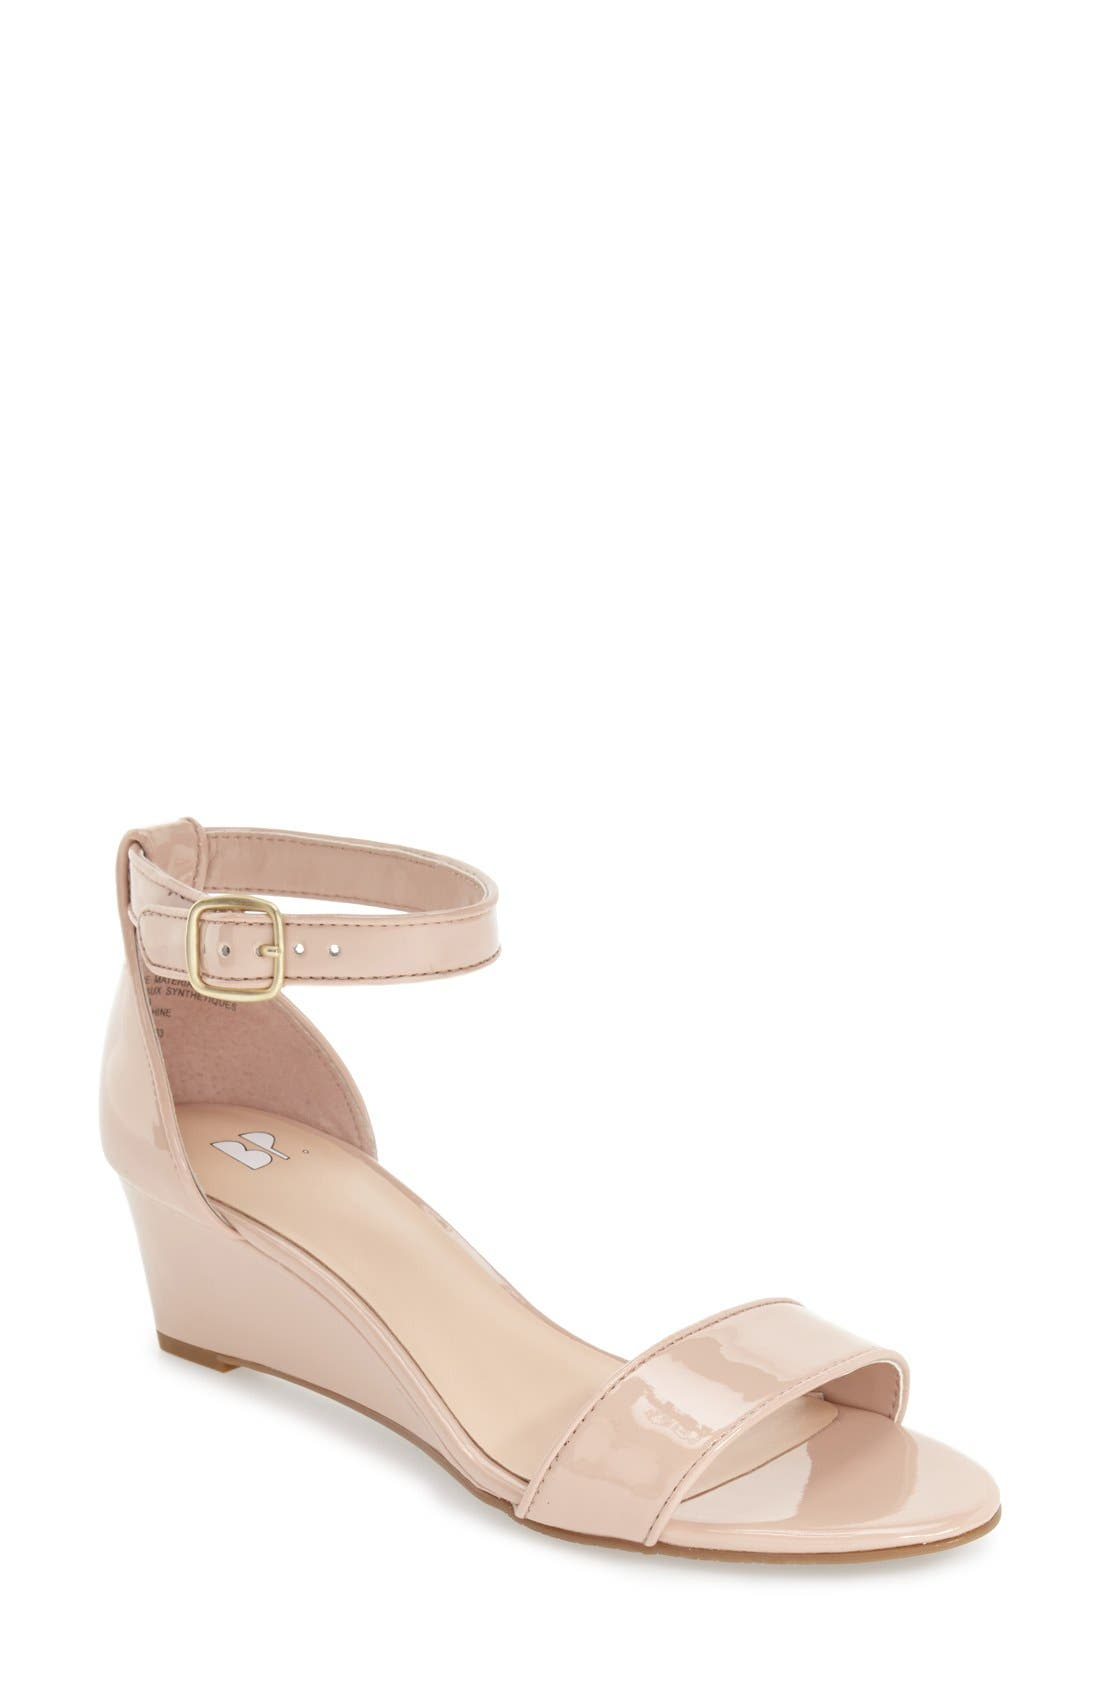 Womens Wedges Wedding Shoes Nordstrom Nordstrom